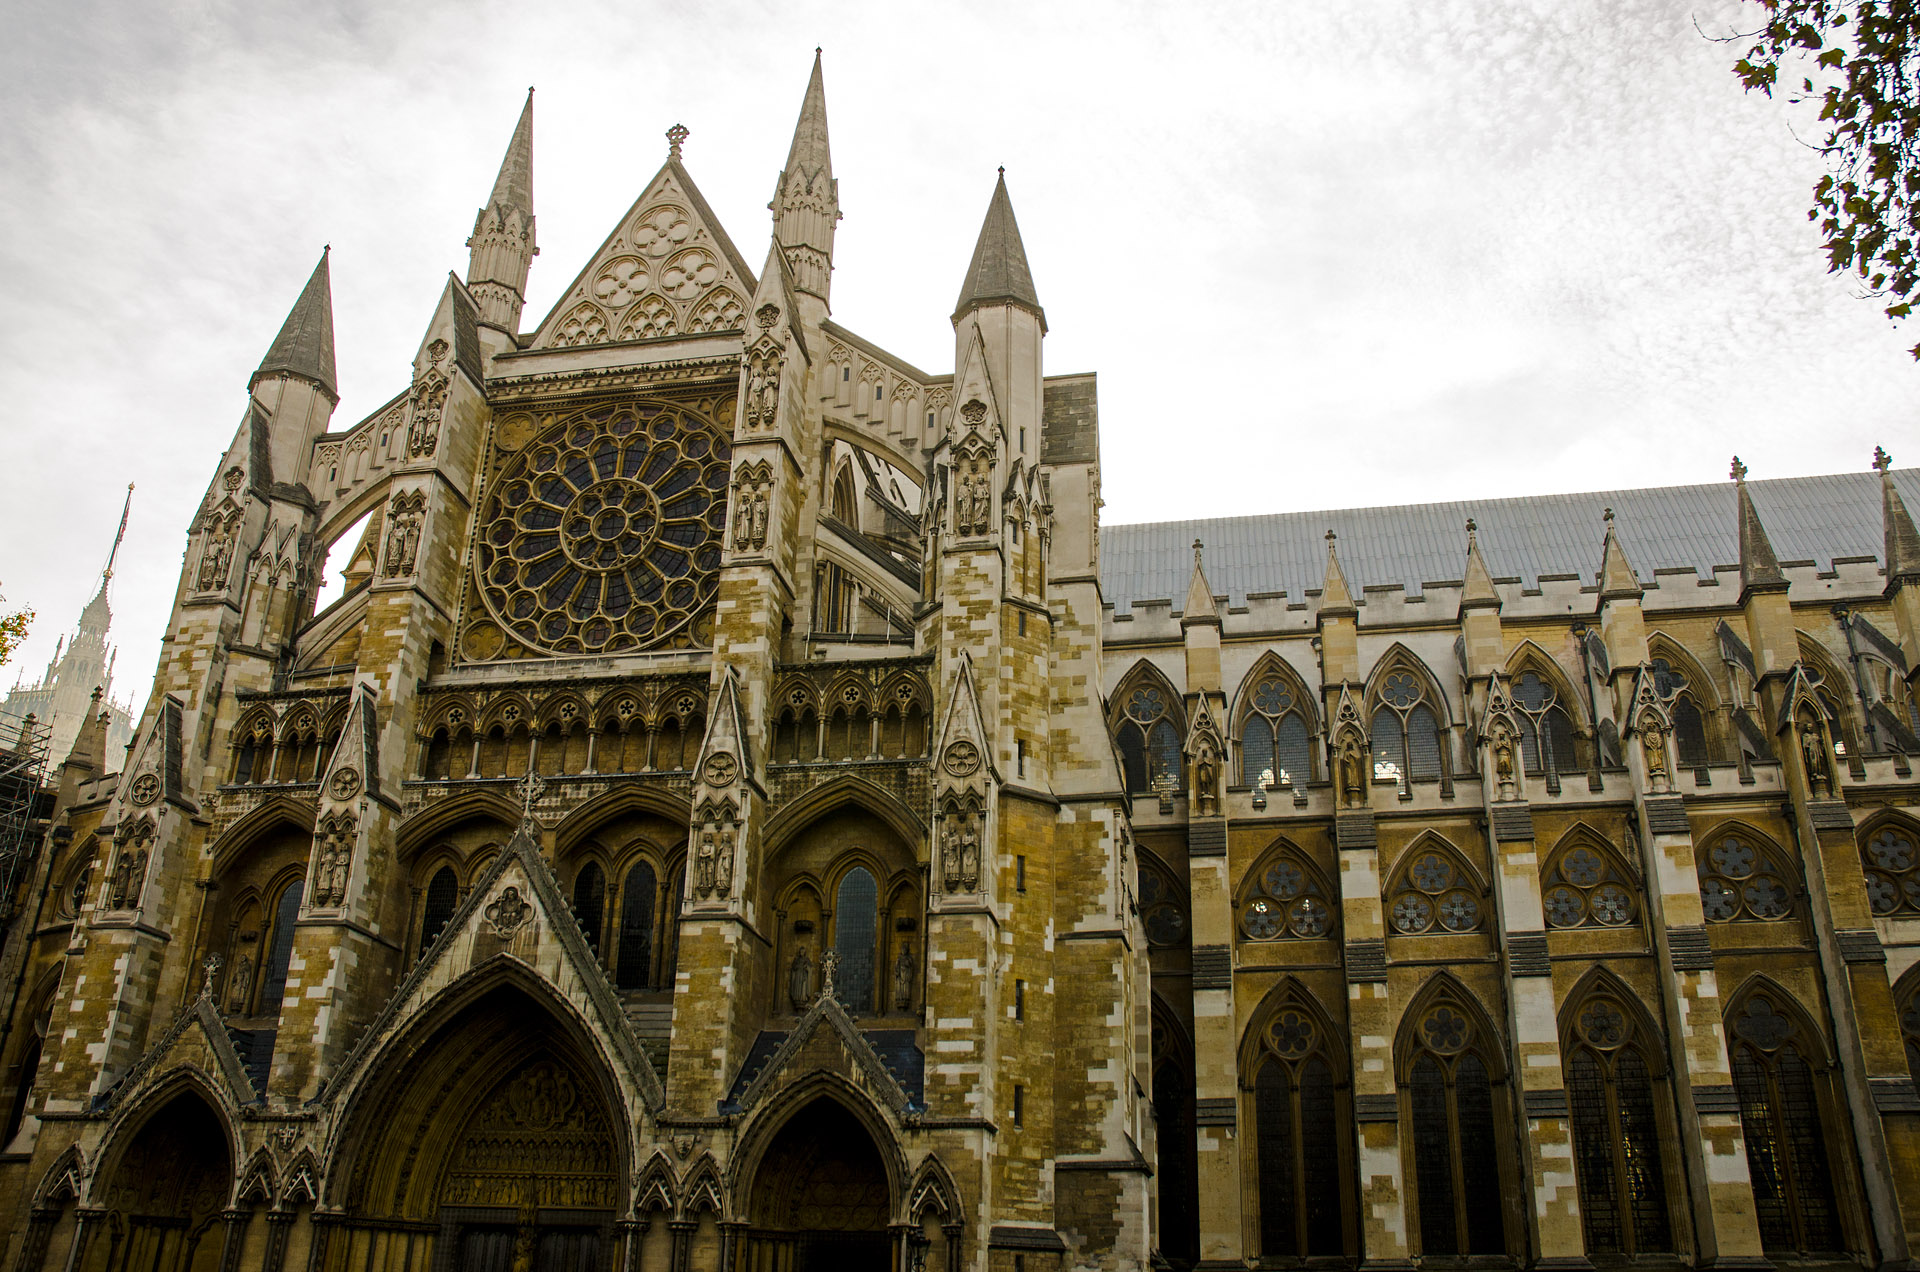 St. Margaret's Church (Westminster Abbey)